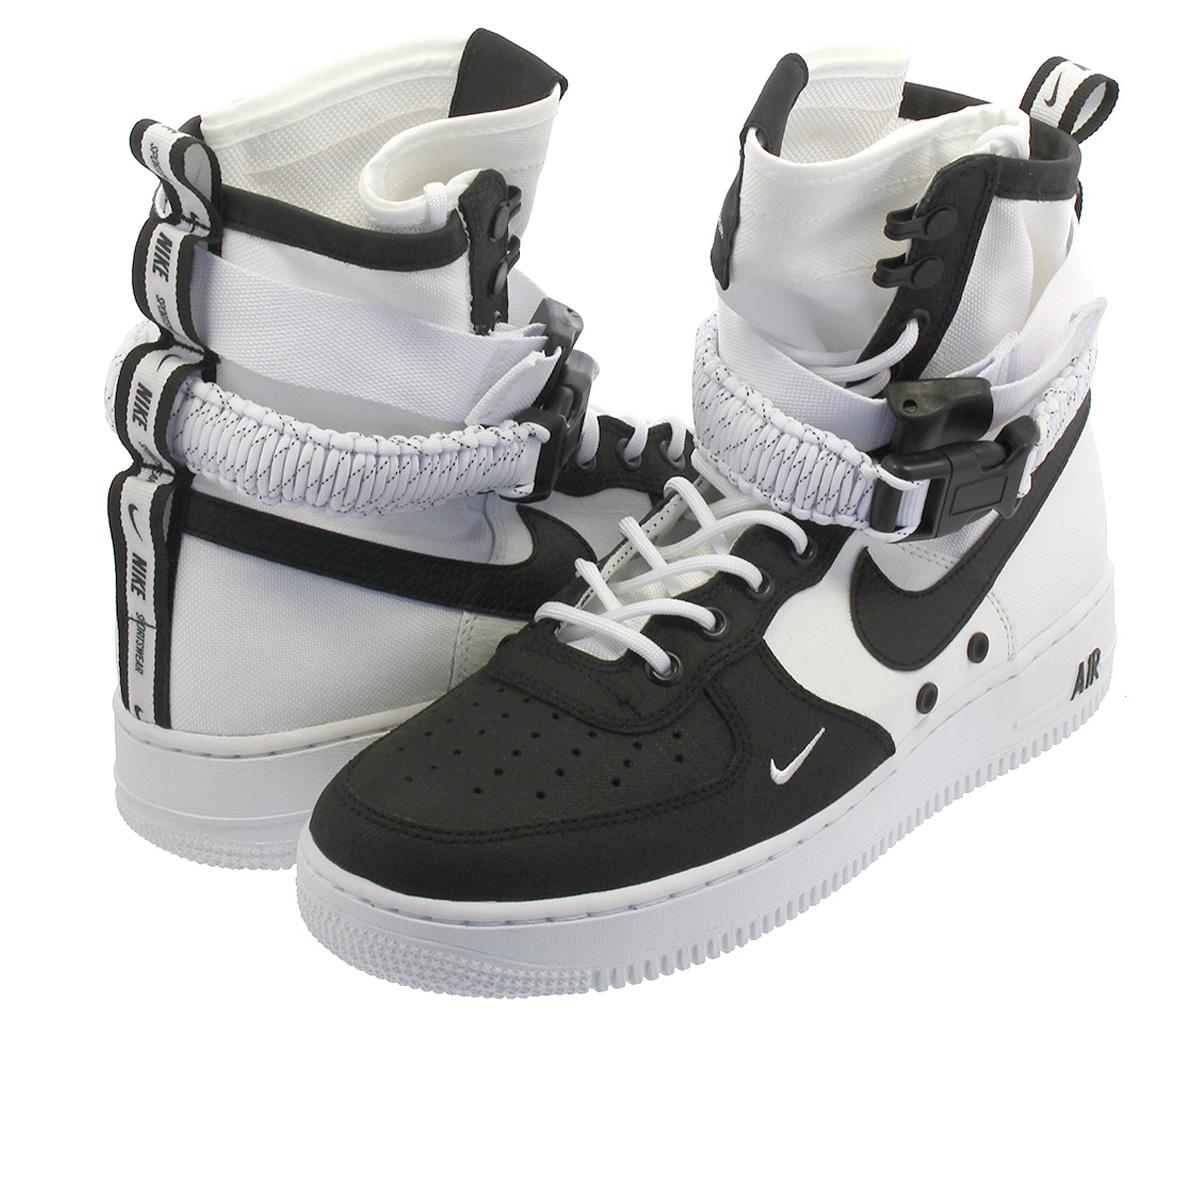 NIKE SPECIAL FIELD AIR FORCE 1 Nike special field air force 1 WHITEBLACKWHITE 864,024 100